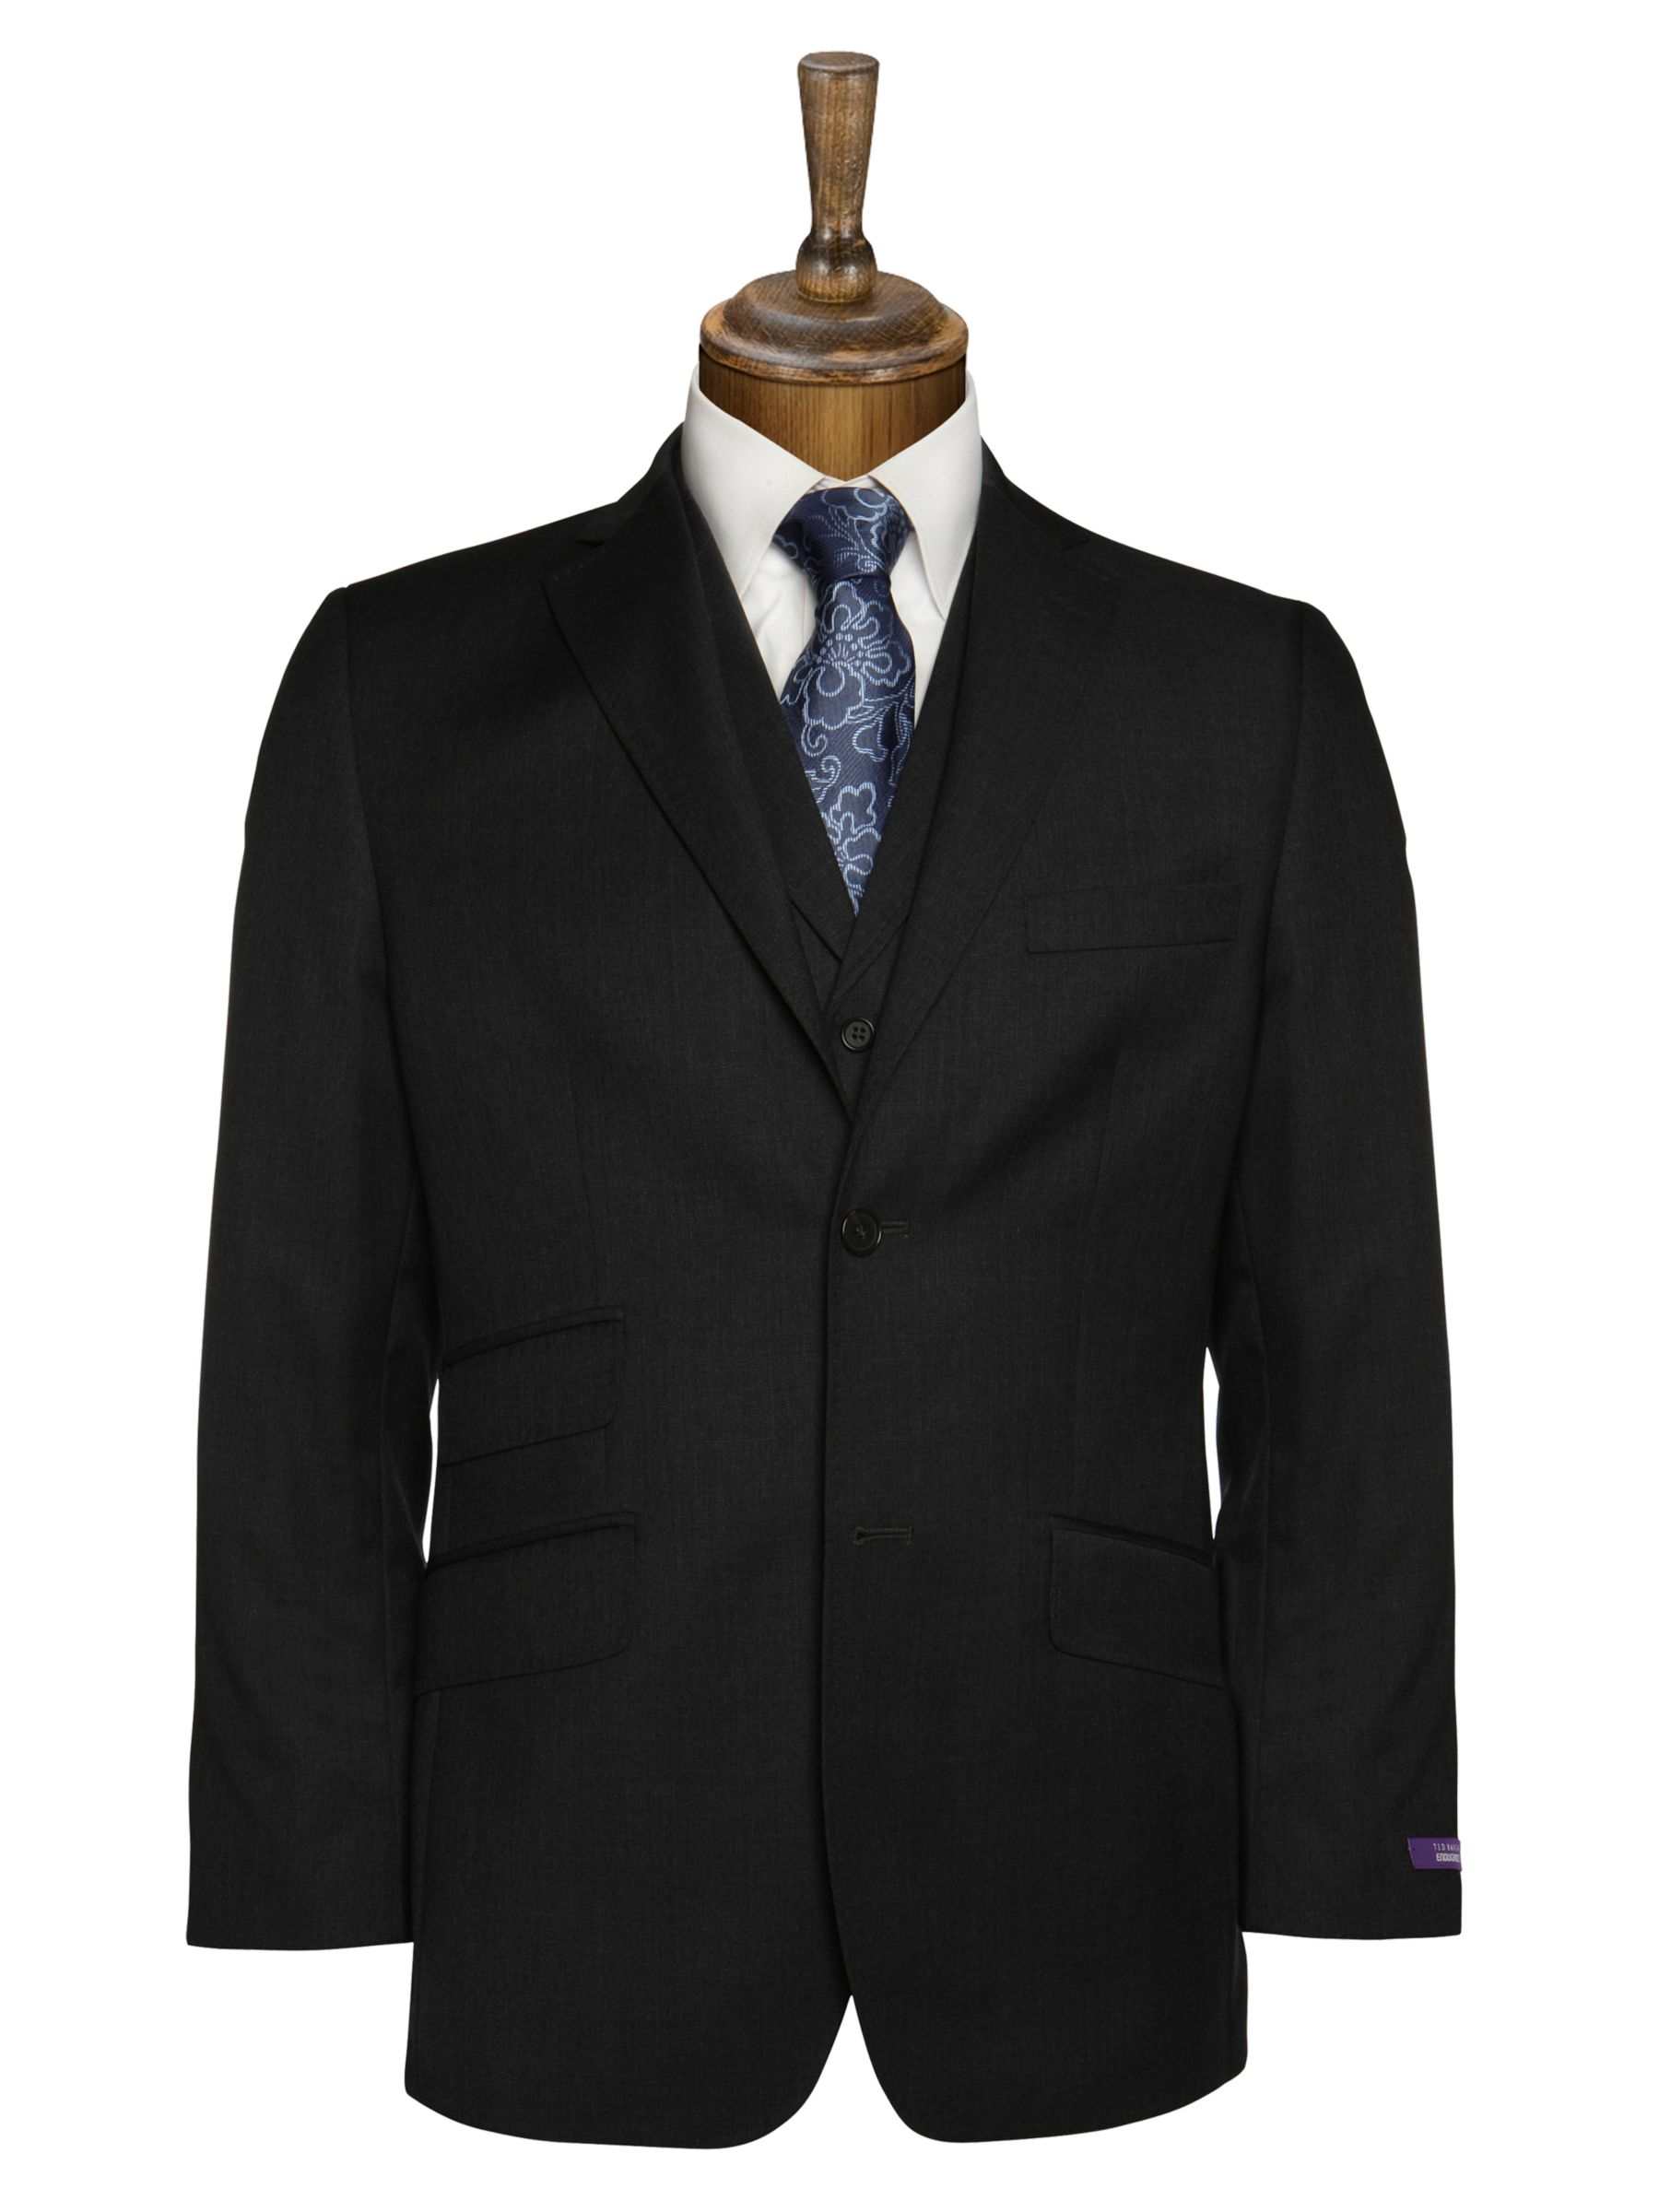 Ted Baker Portee Pick 'N' Pick Jacket, Charcoal at JohnLewis